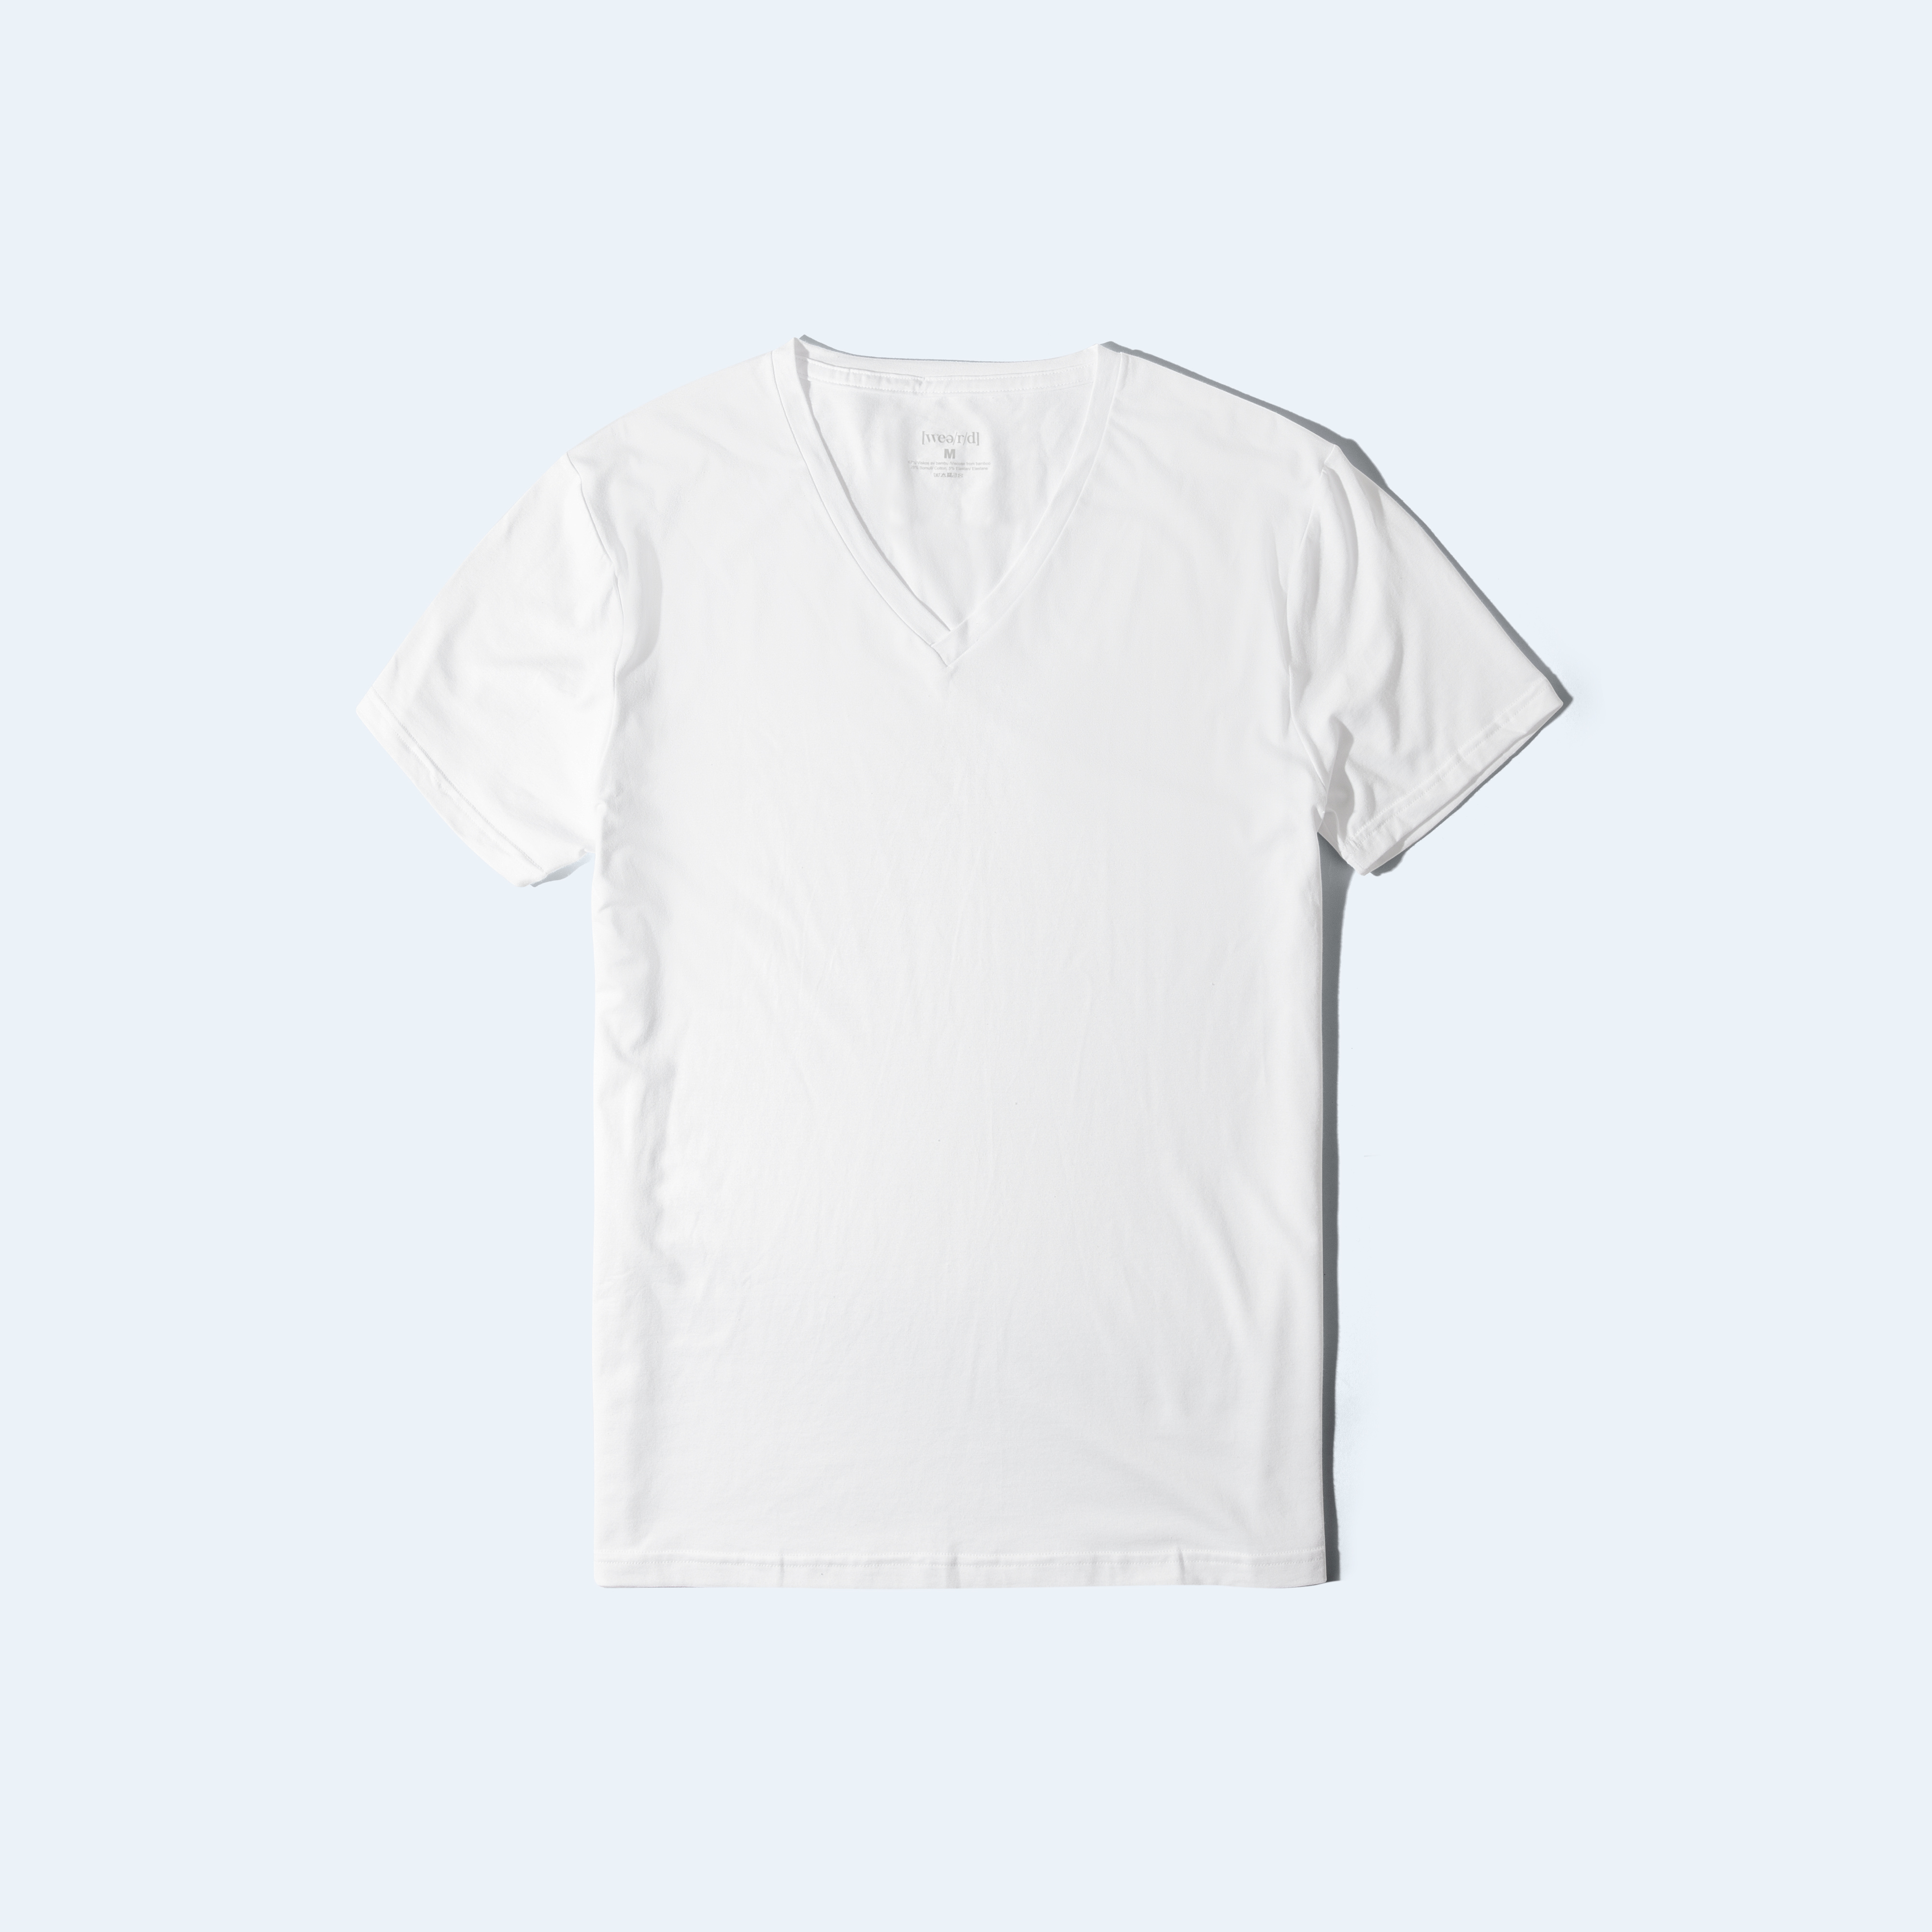 Awesome T-shirt [V-neck] - white